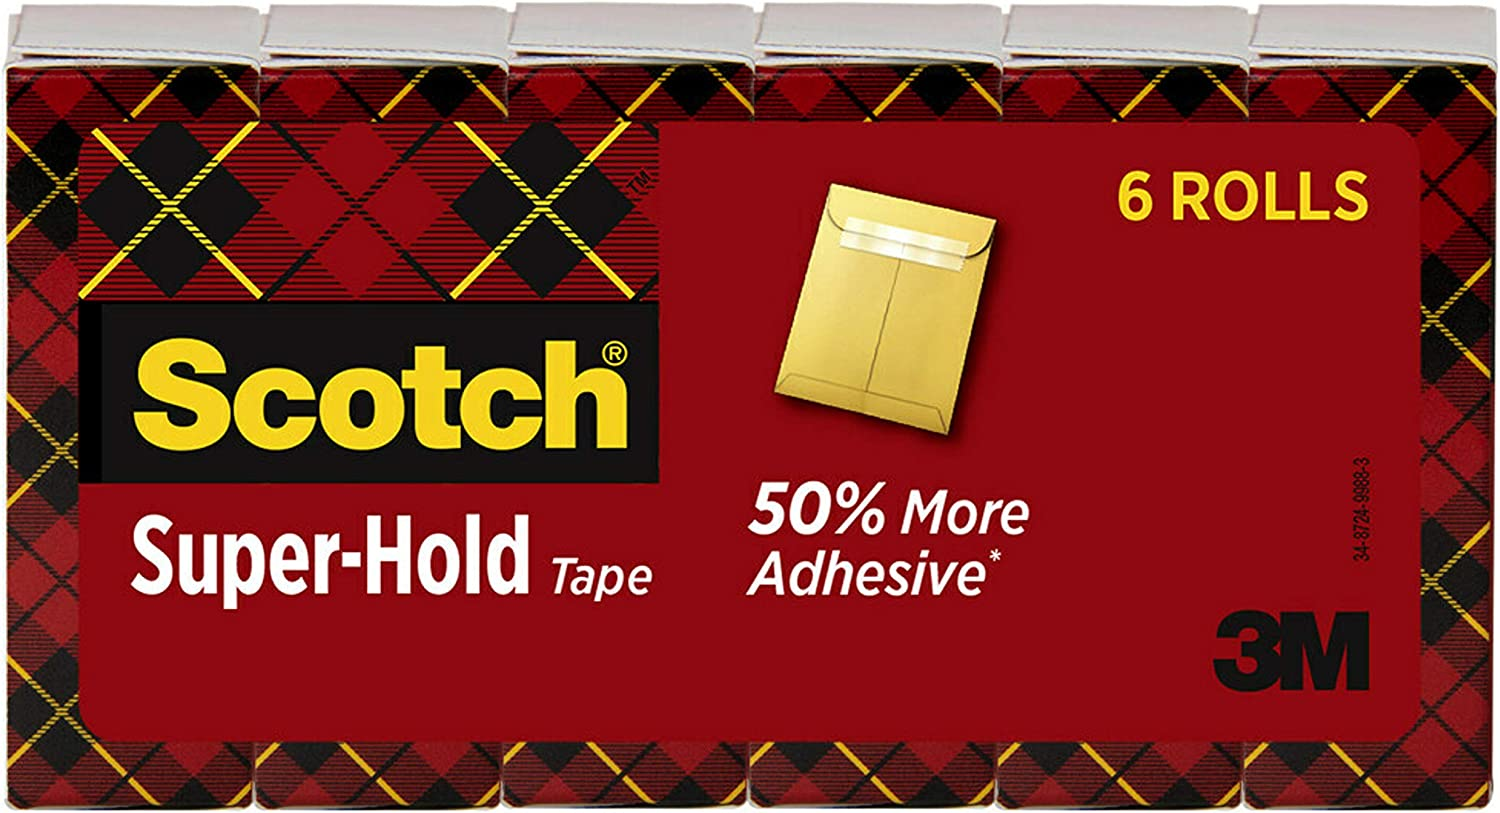 Scotch Super-Hold Tape, 6 Rolls, Transparent Finish, 50% More Adhesive, Trusted Favorite, 3/4 x 1000 Inches, Boxed (700K6)